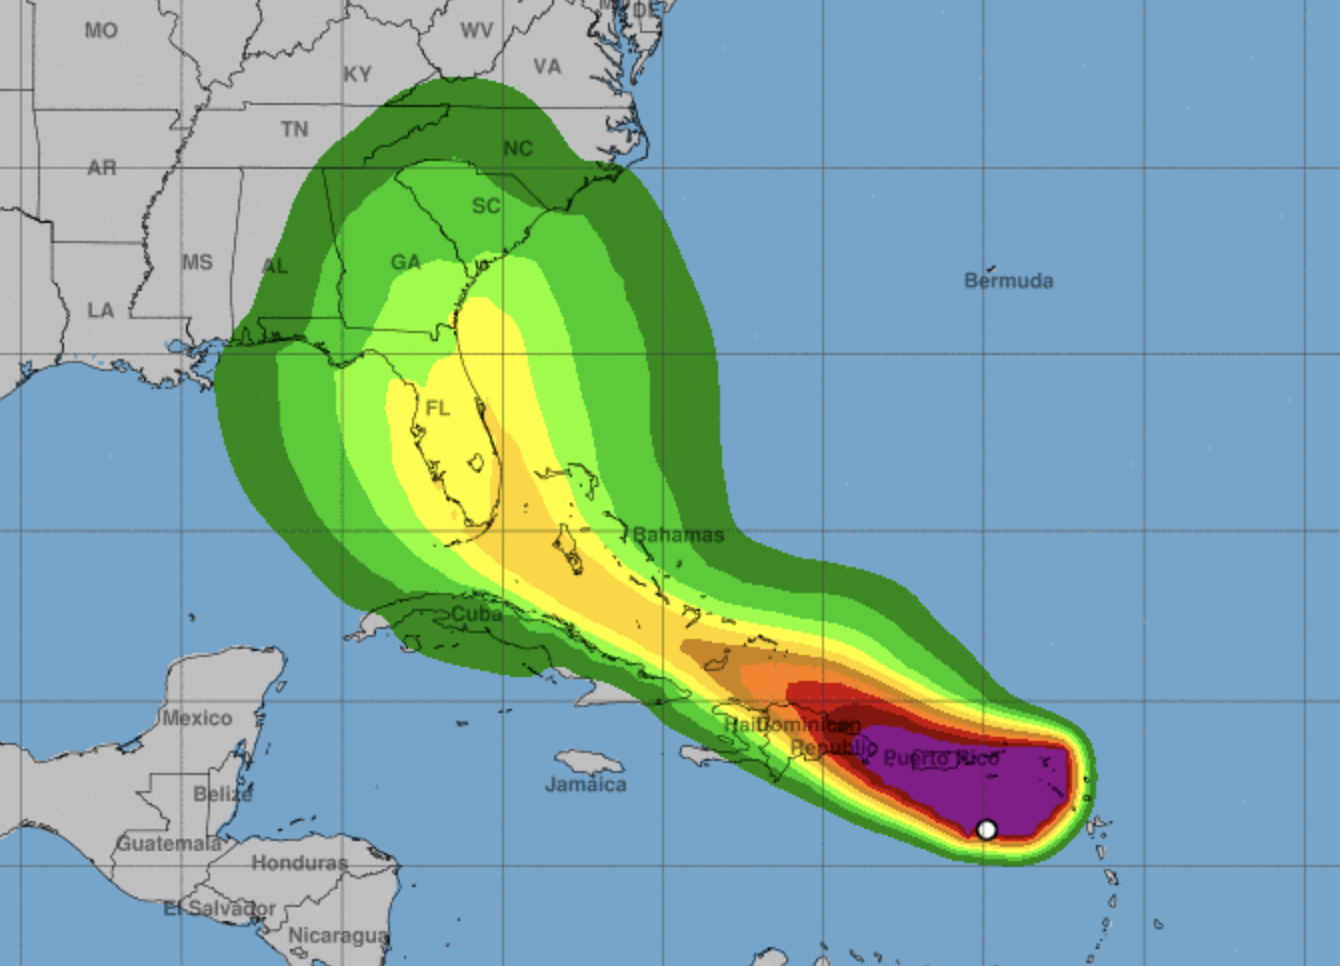 Windspeed probabilities chart over map os southeastern US and Caribbean for Isaias via NOAA